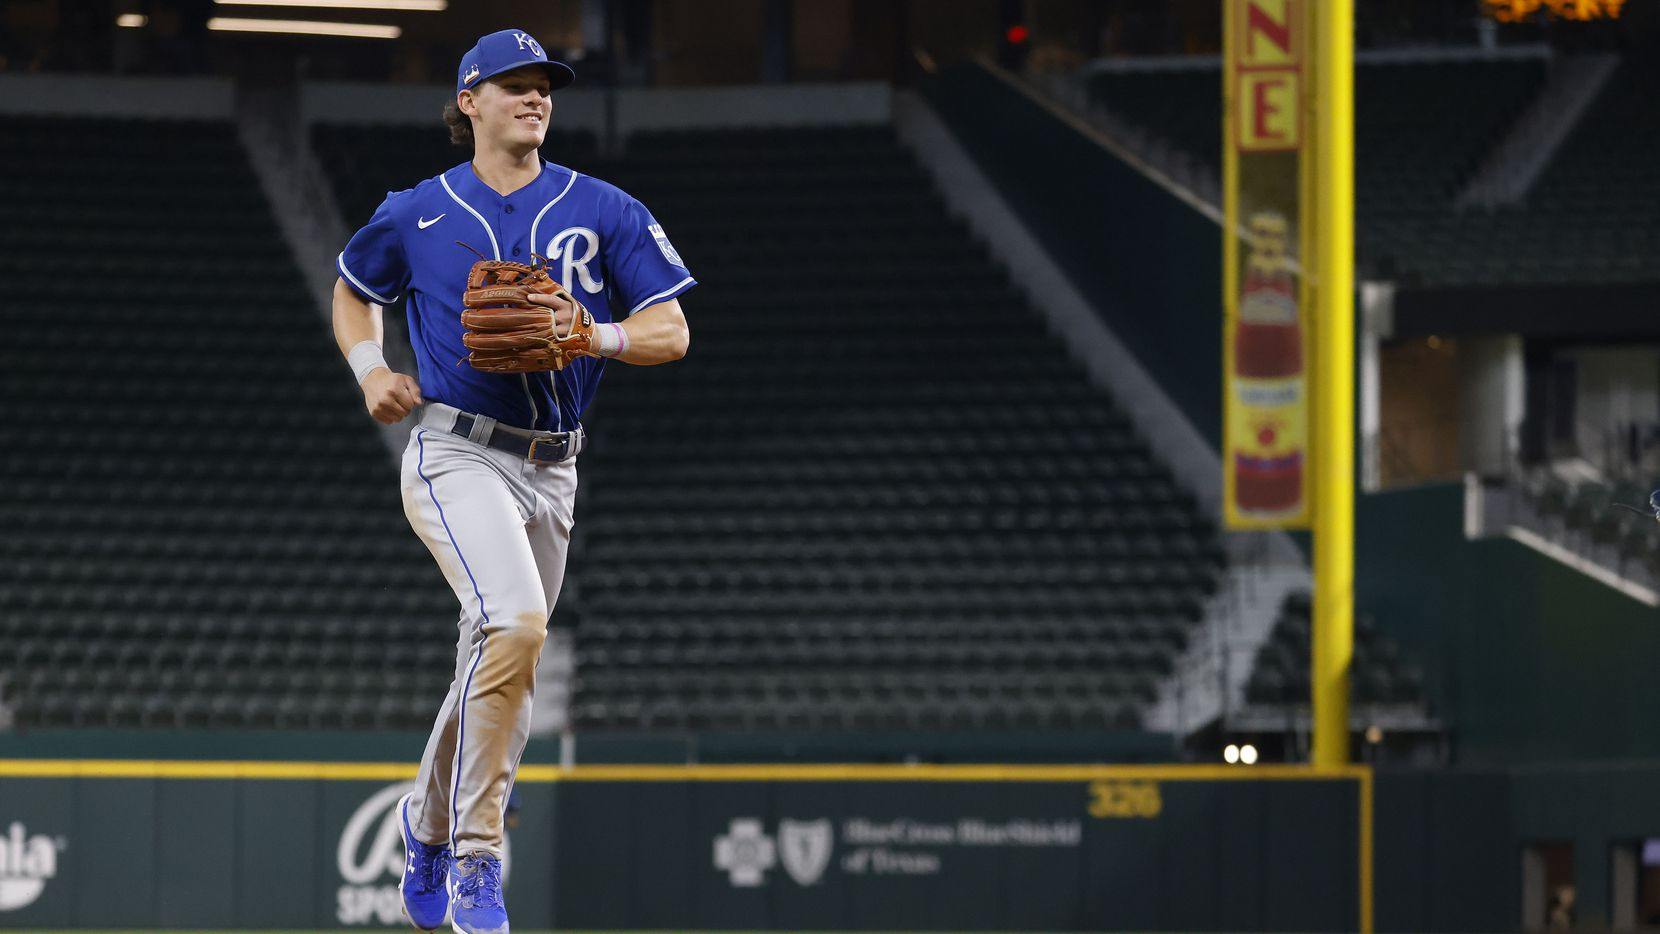 Former Colleyville Heritage High School shortstop Bobby Witt Jr., the No. 2 overall pick in the 2019 draft, was recently named minor-league player of the year by two publications.